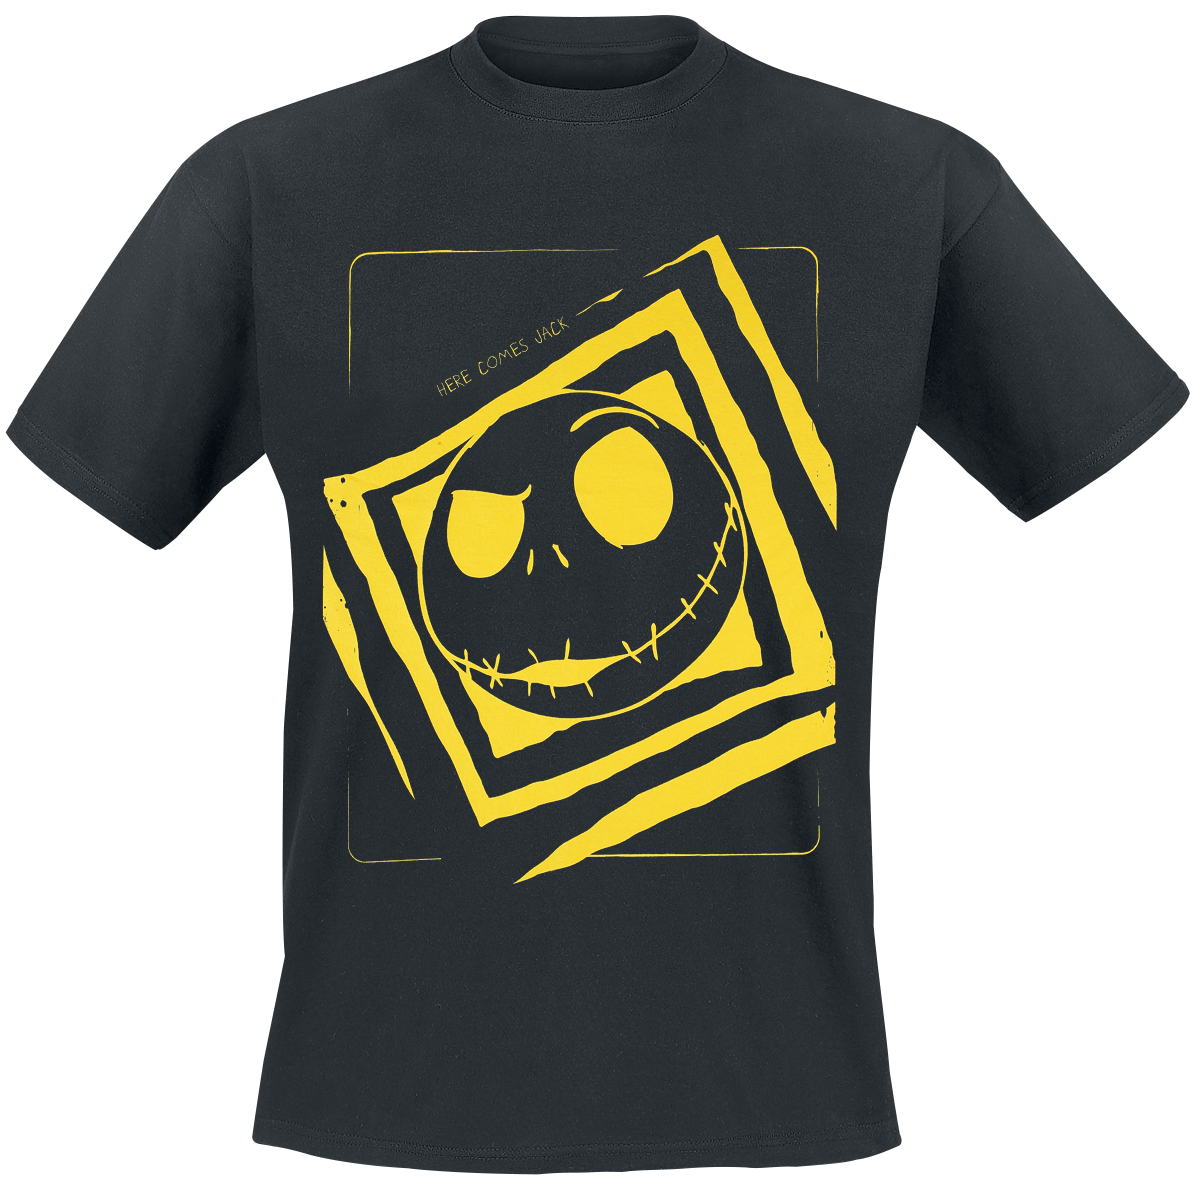 Nightmare Before Christmas - Here Comes Jack - T-Shirt - black image